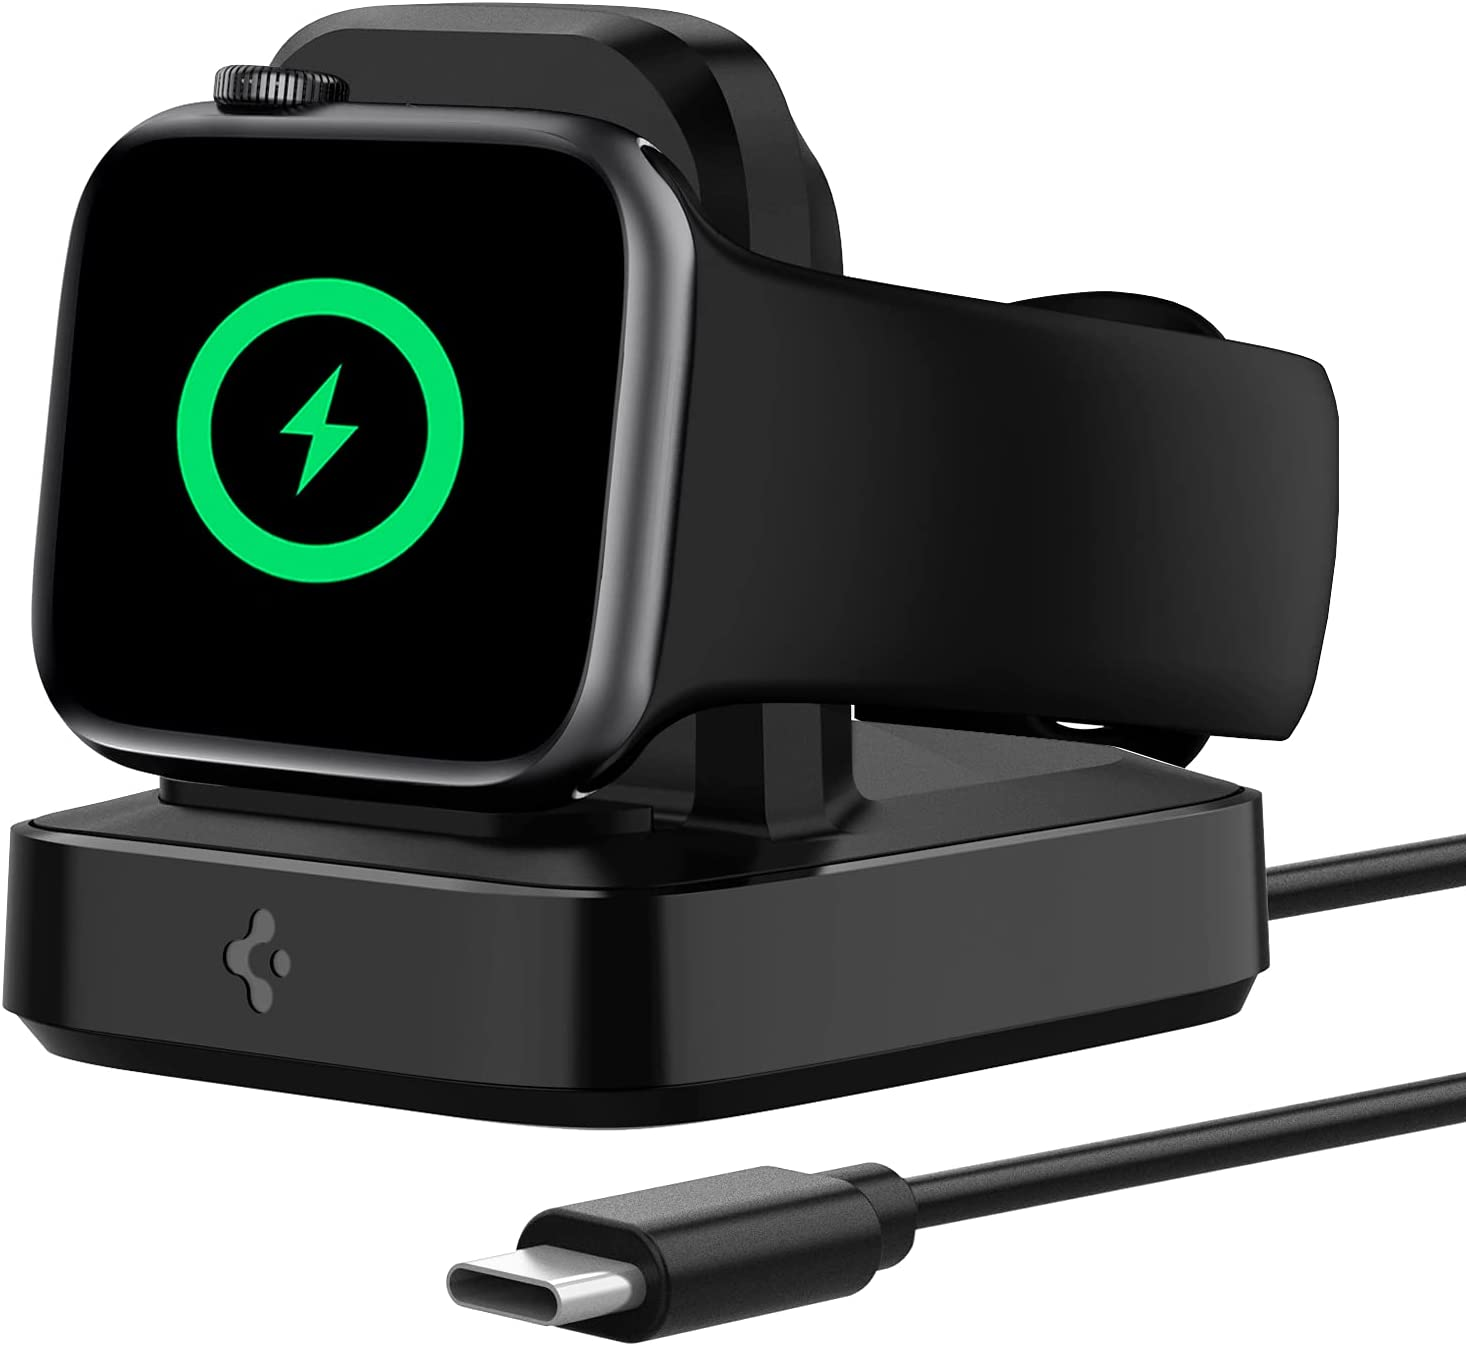 Spigen ArcField for Apple Watch Charger Stand, MFi Certified for Apple Watch Charger, Magnetic Wireless Charging for Apple Watch Series 6 SE 5 4 3 2 1 44mm 42mm 40mm 38mm Built in Charger&USB C Cable